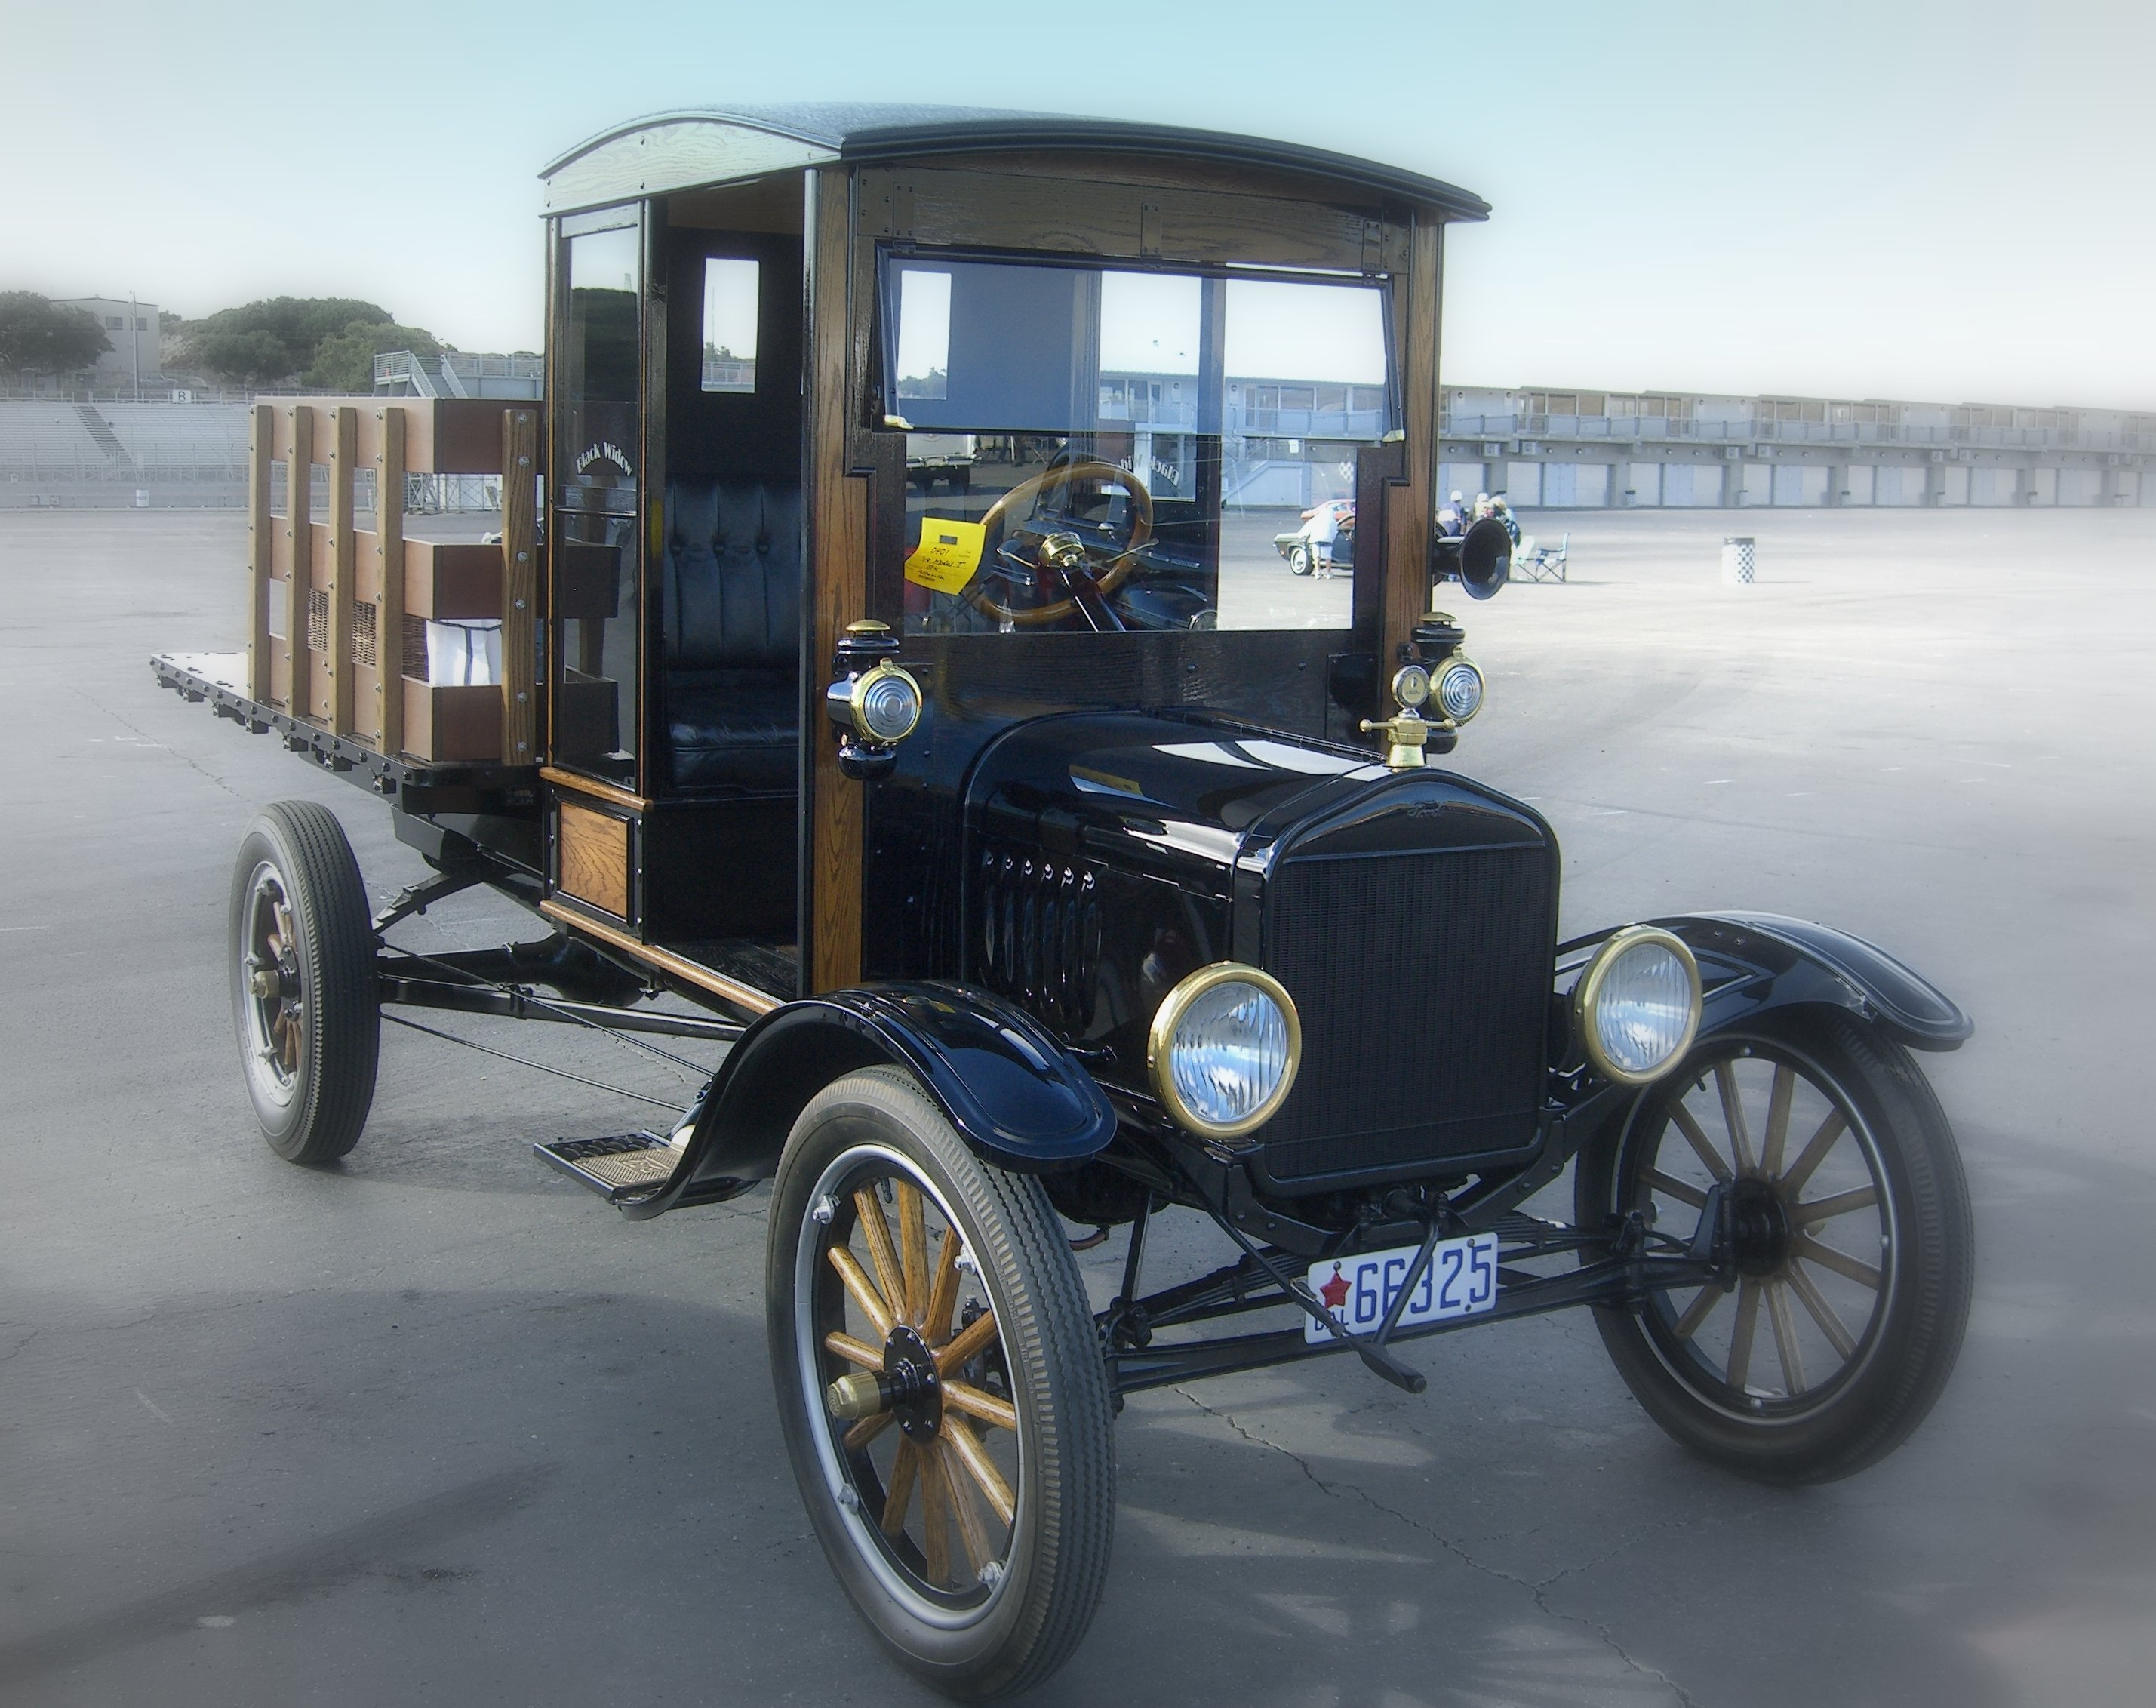 FYI: The Last Time the Cubs Won the World Series, the Model T Just Debuted